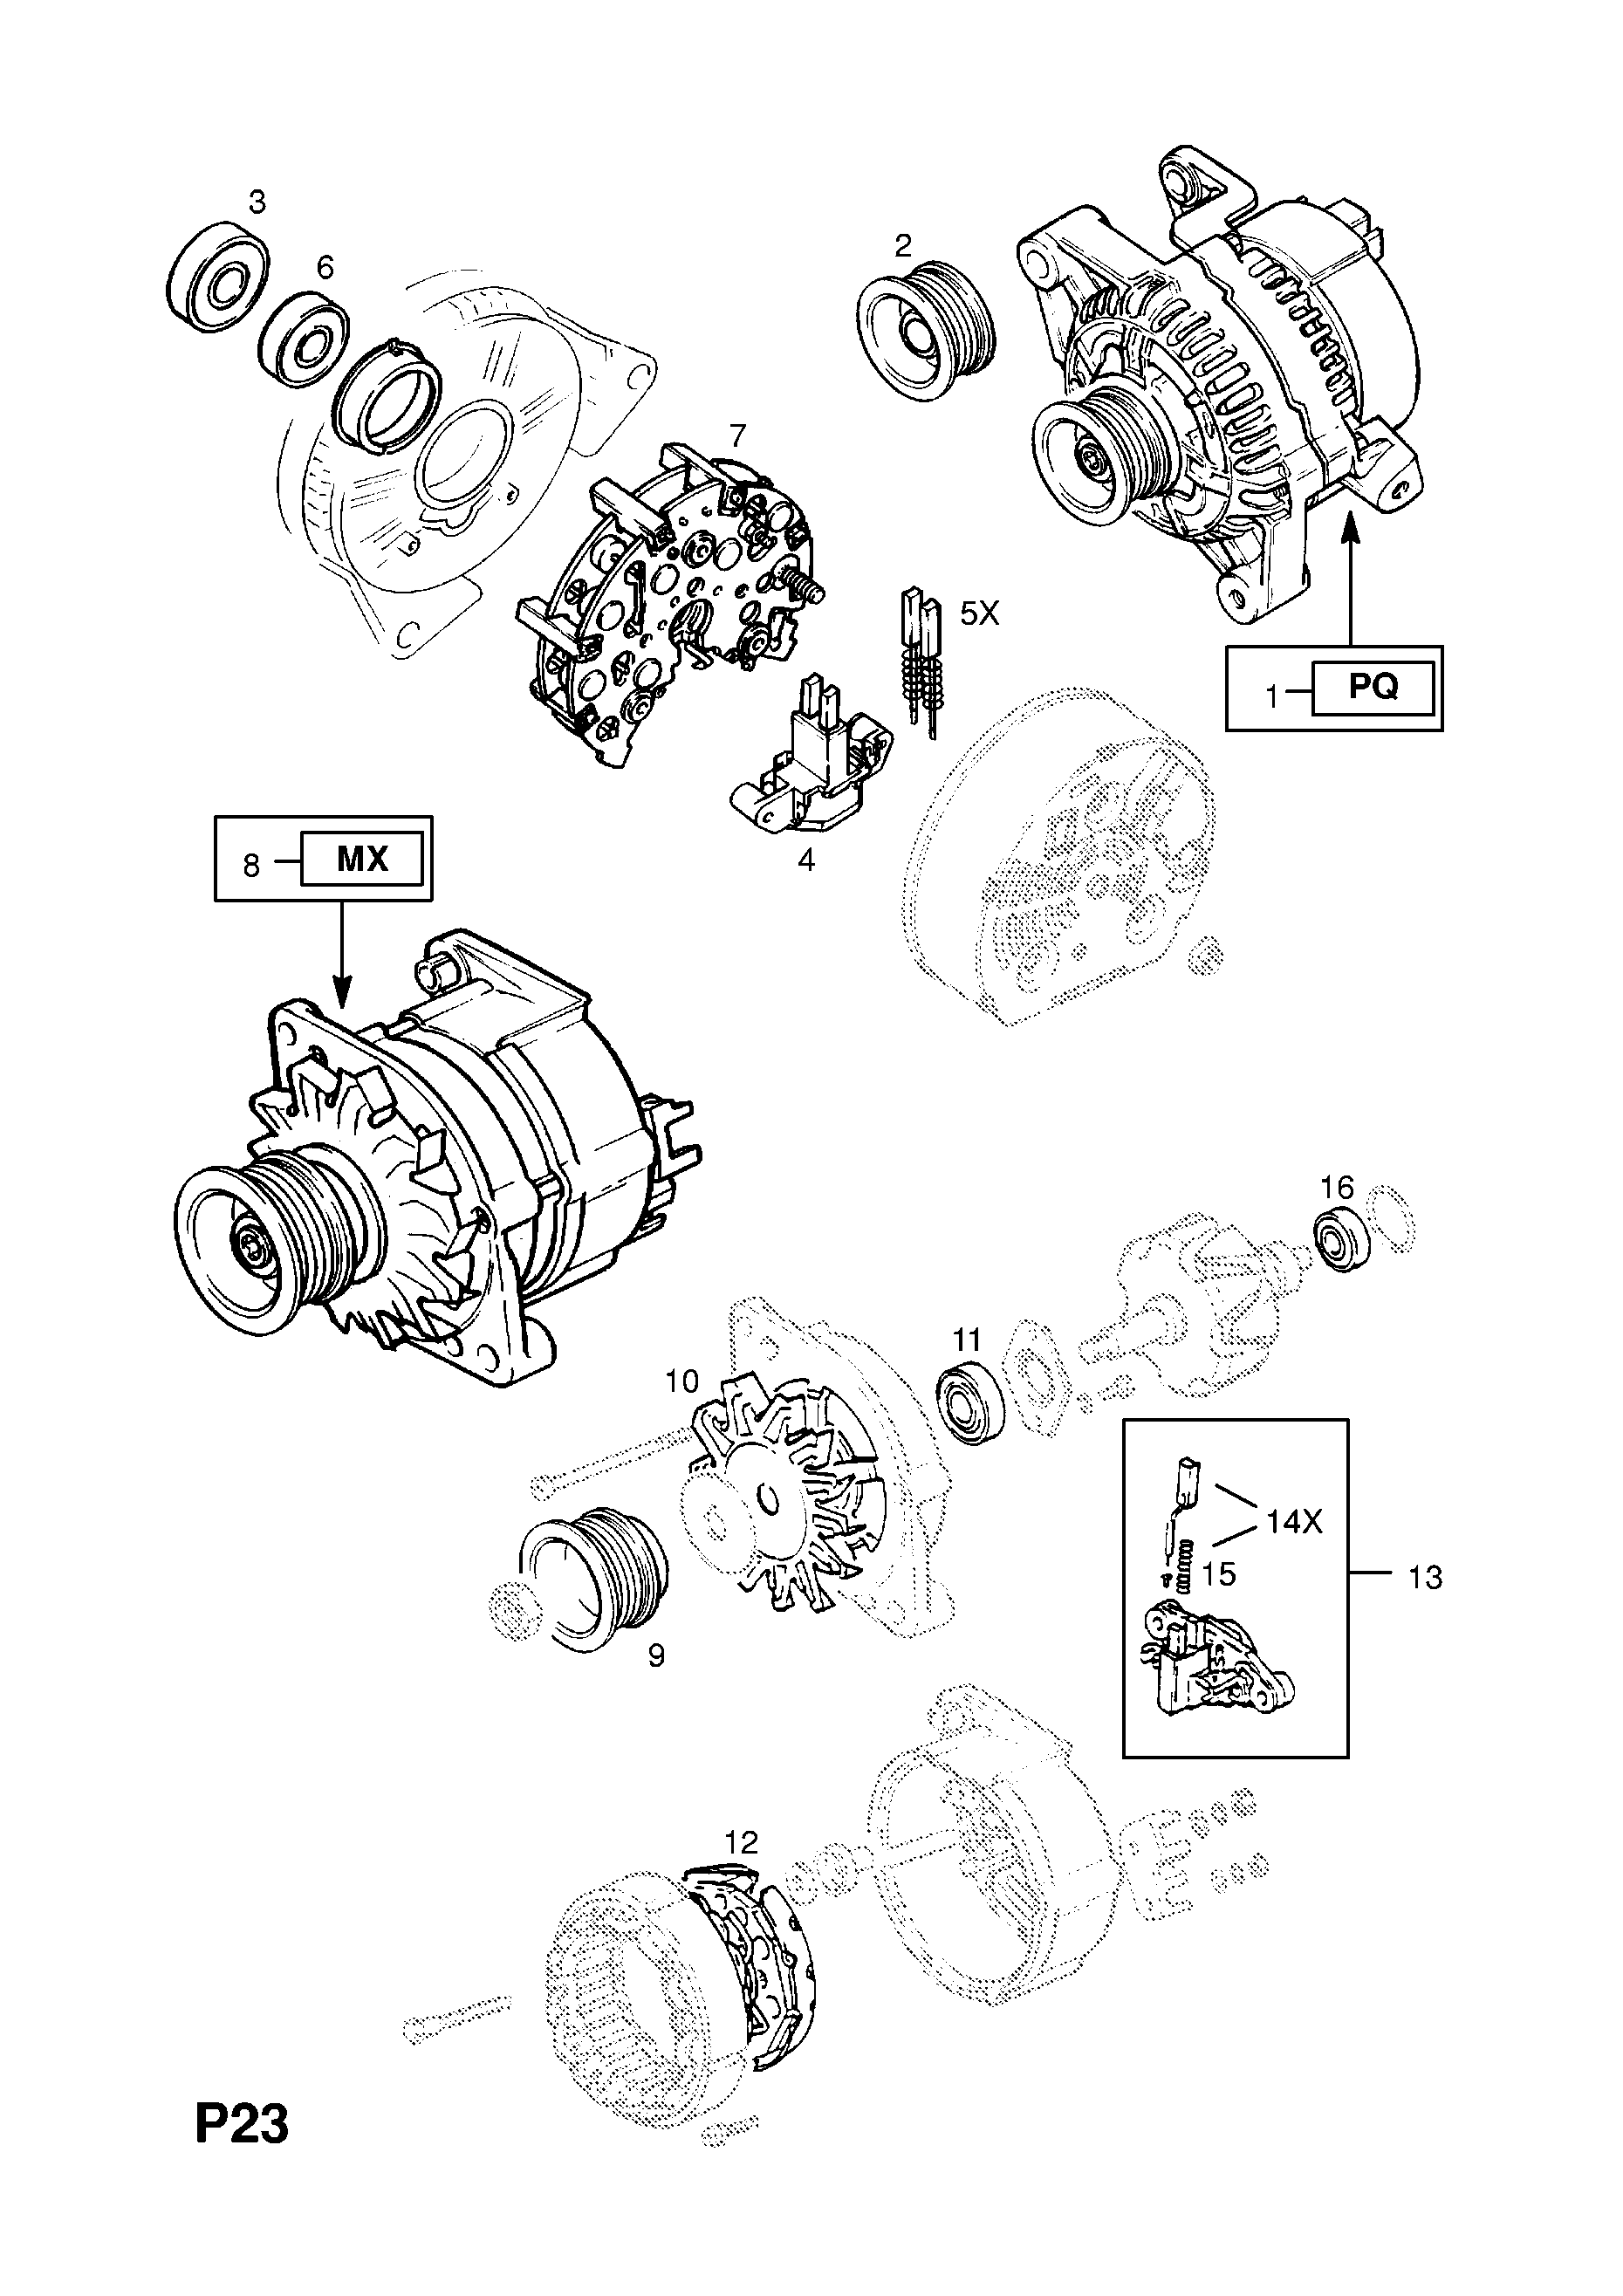 Vauxhall Cavalier 1989 1995 P Electrical 1 Engine And Cooling Bosch Starter Motor Wiring Diagram List Of Parts